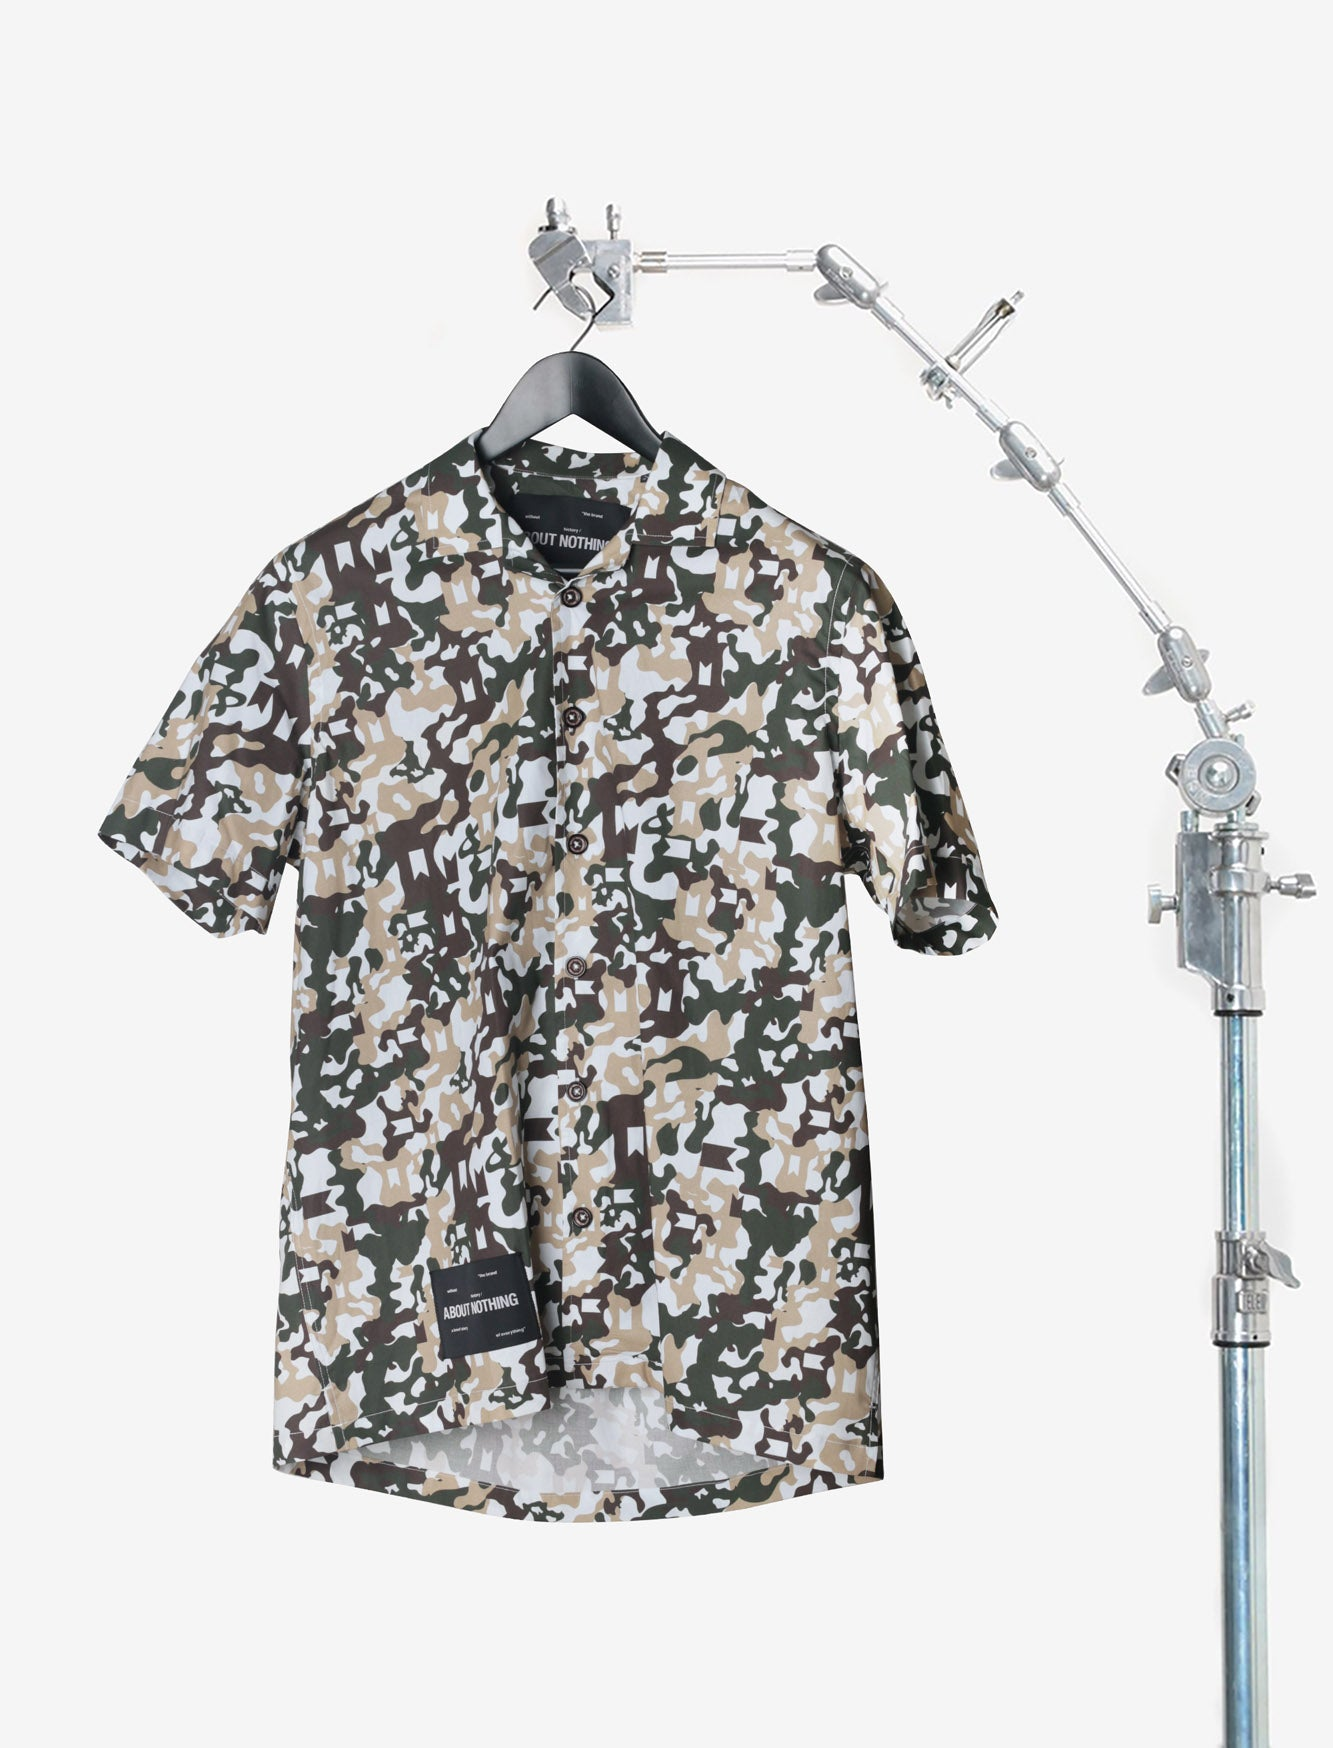 BOWLING SHIRT // GREEN CAMO SMALL PATTERN